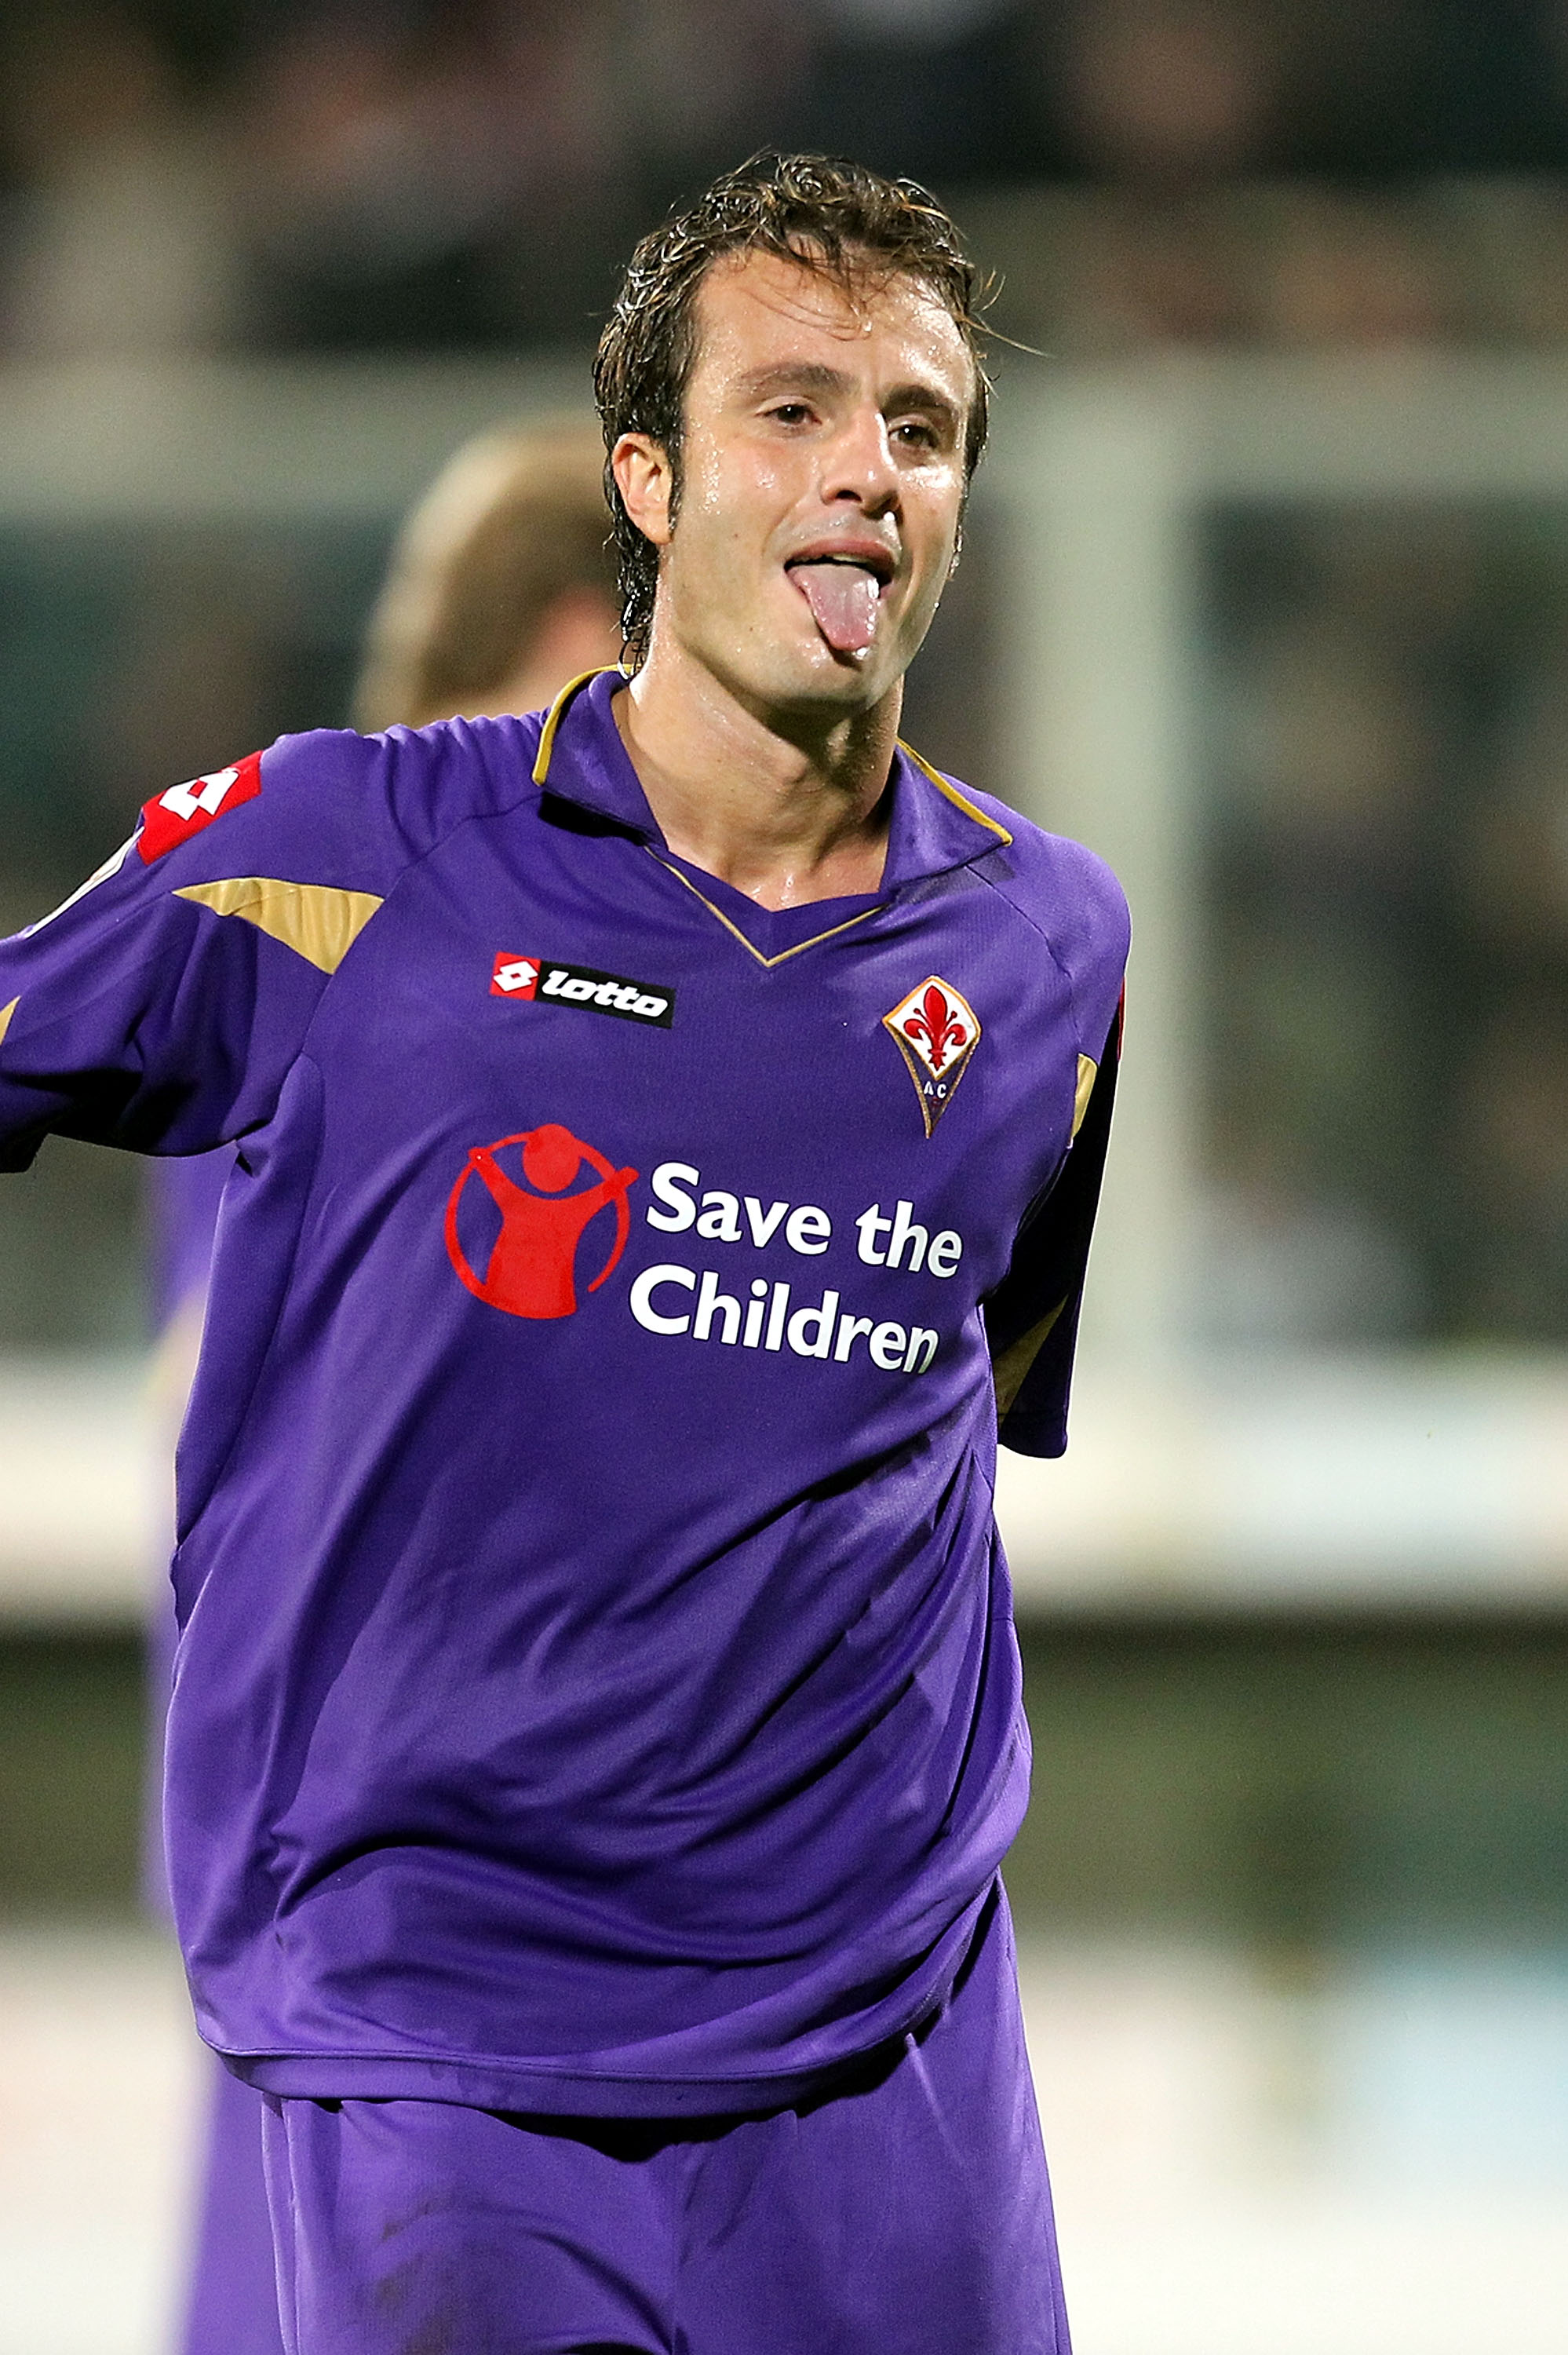 Gilardino has moved around Serie A and is now with Fiorentina.